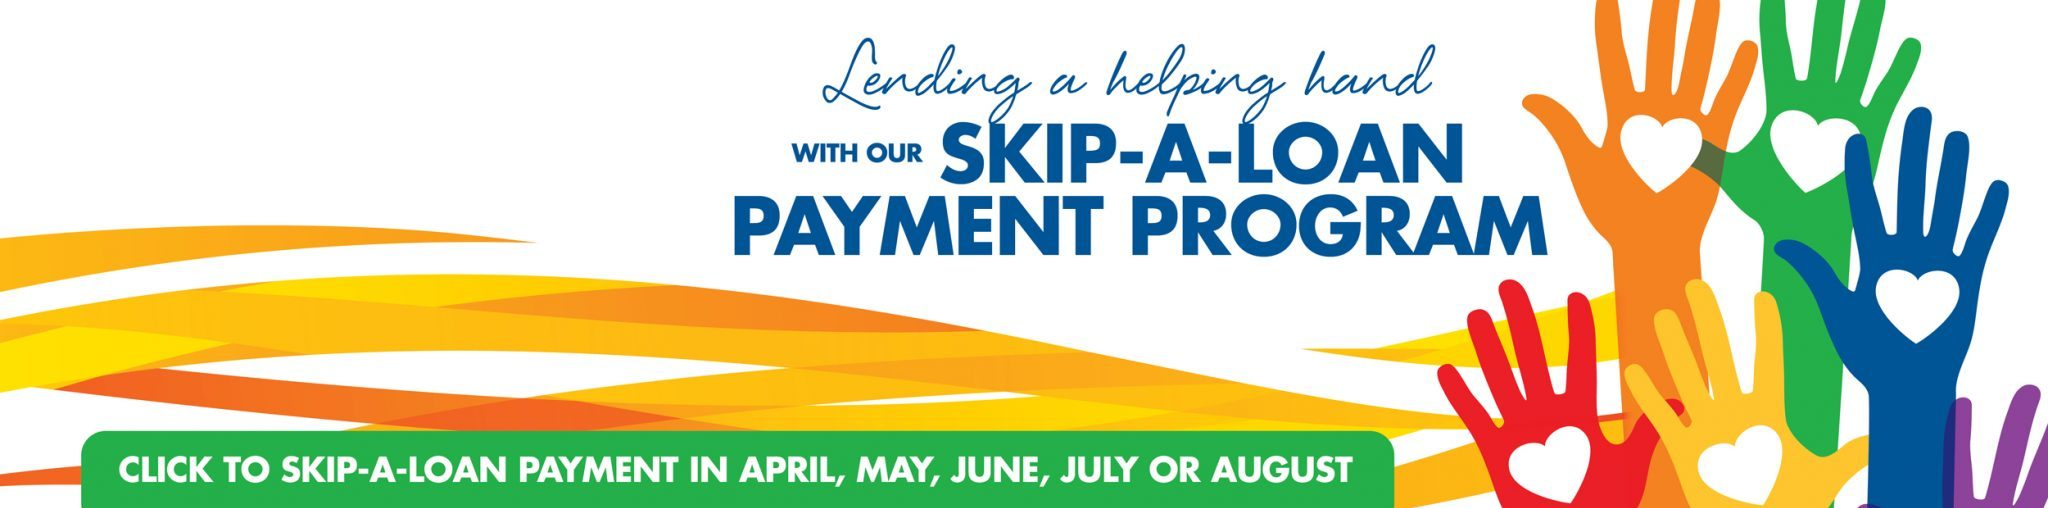 Skip a loan payment in April, May, June, July, or August.